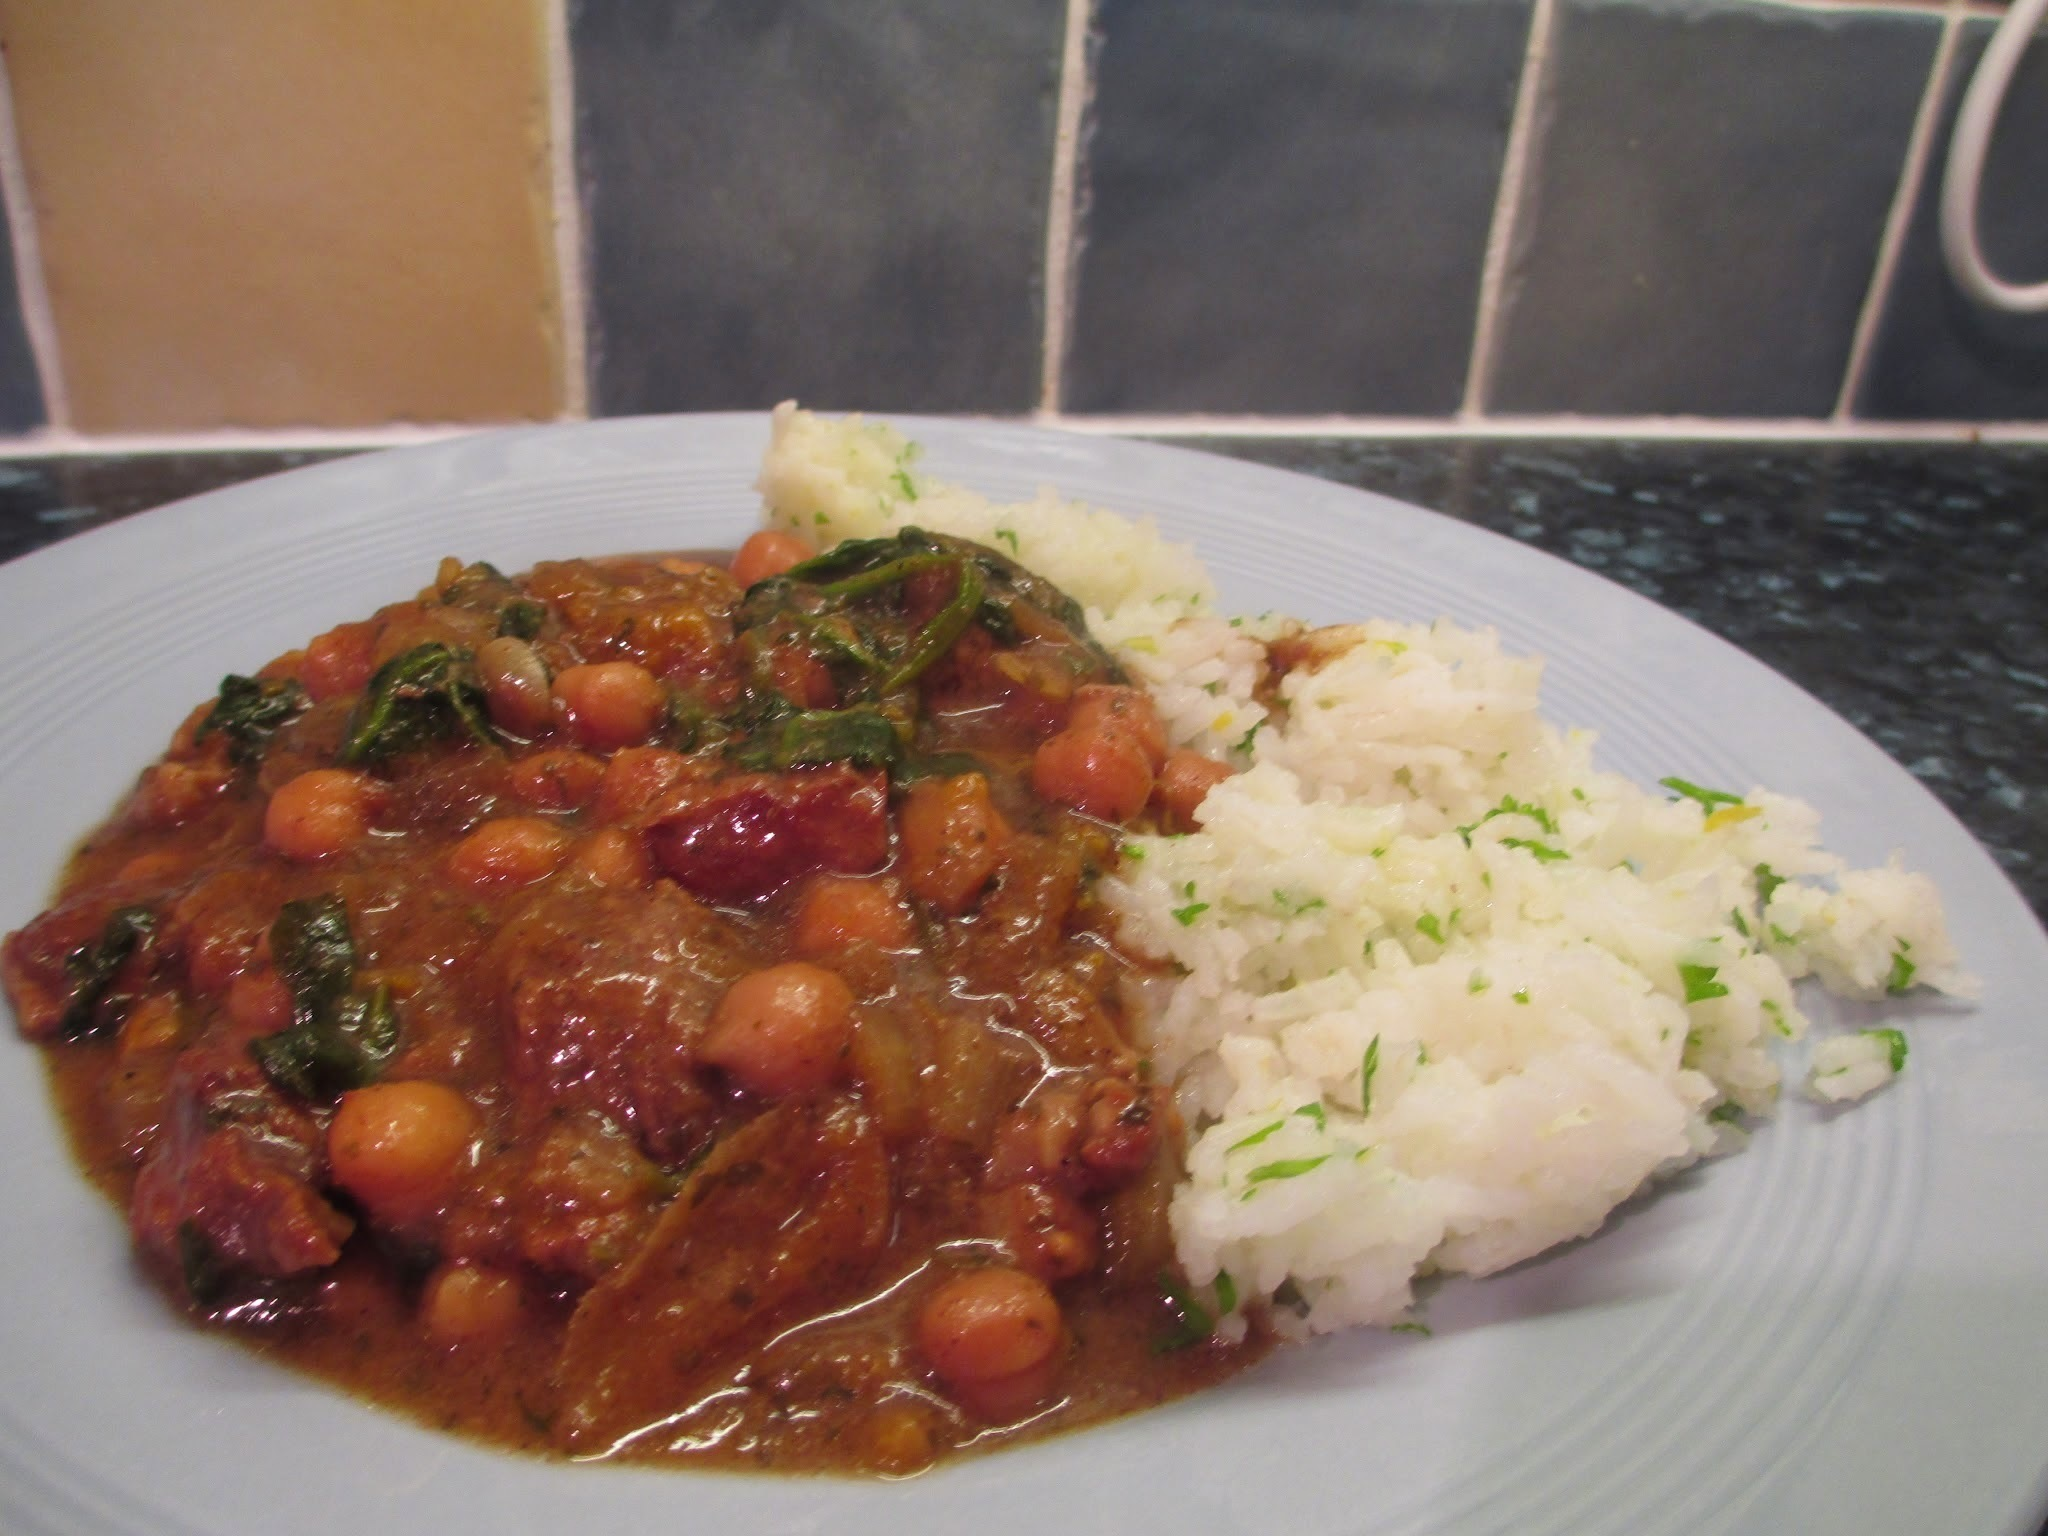 Slow cooker lamb tagine with chick peas.